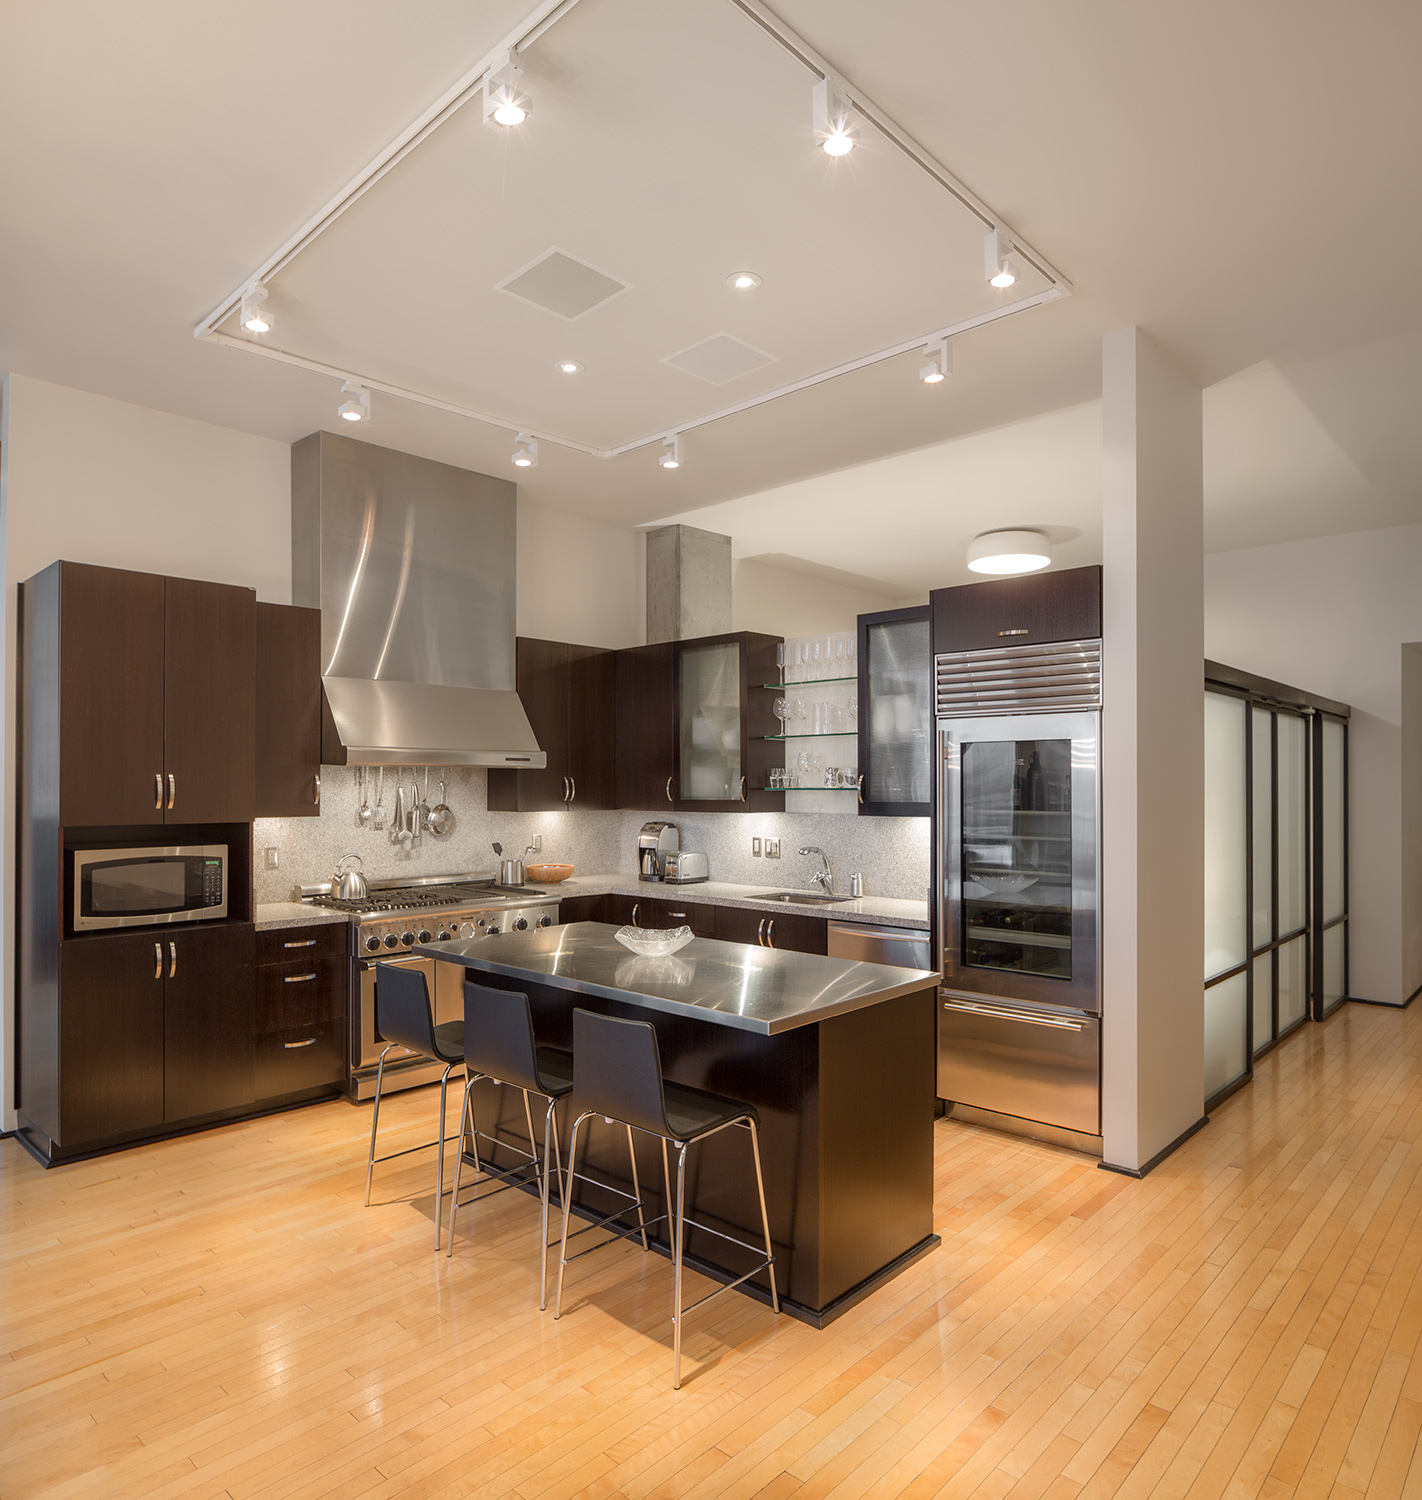 3b_Edge-JoshPartee-3538-kitchen.jpg